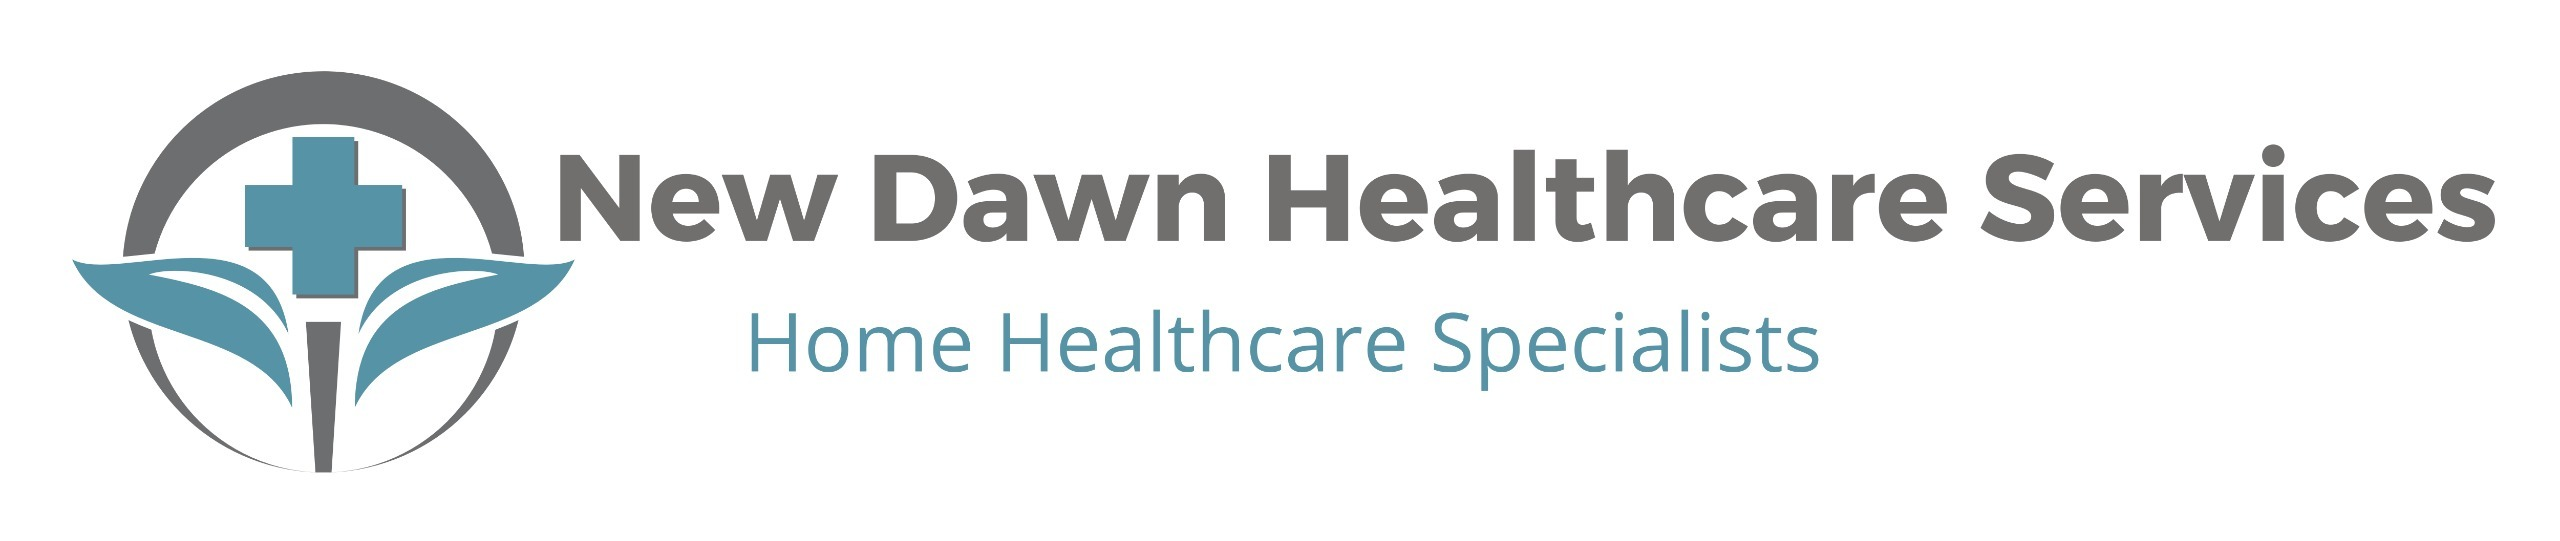 Newdawnhealth Care (@newdawnhealthcaremarketing) Cover Image